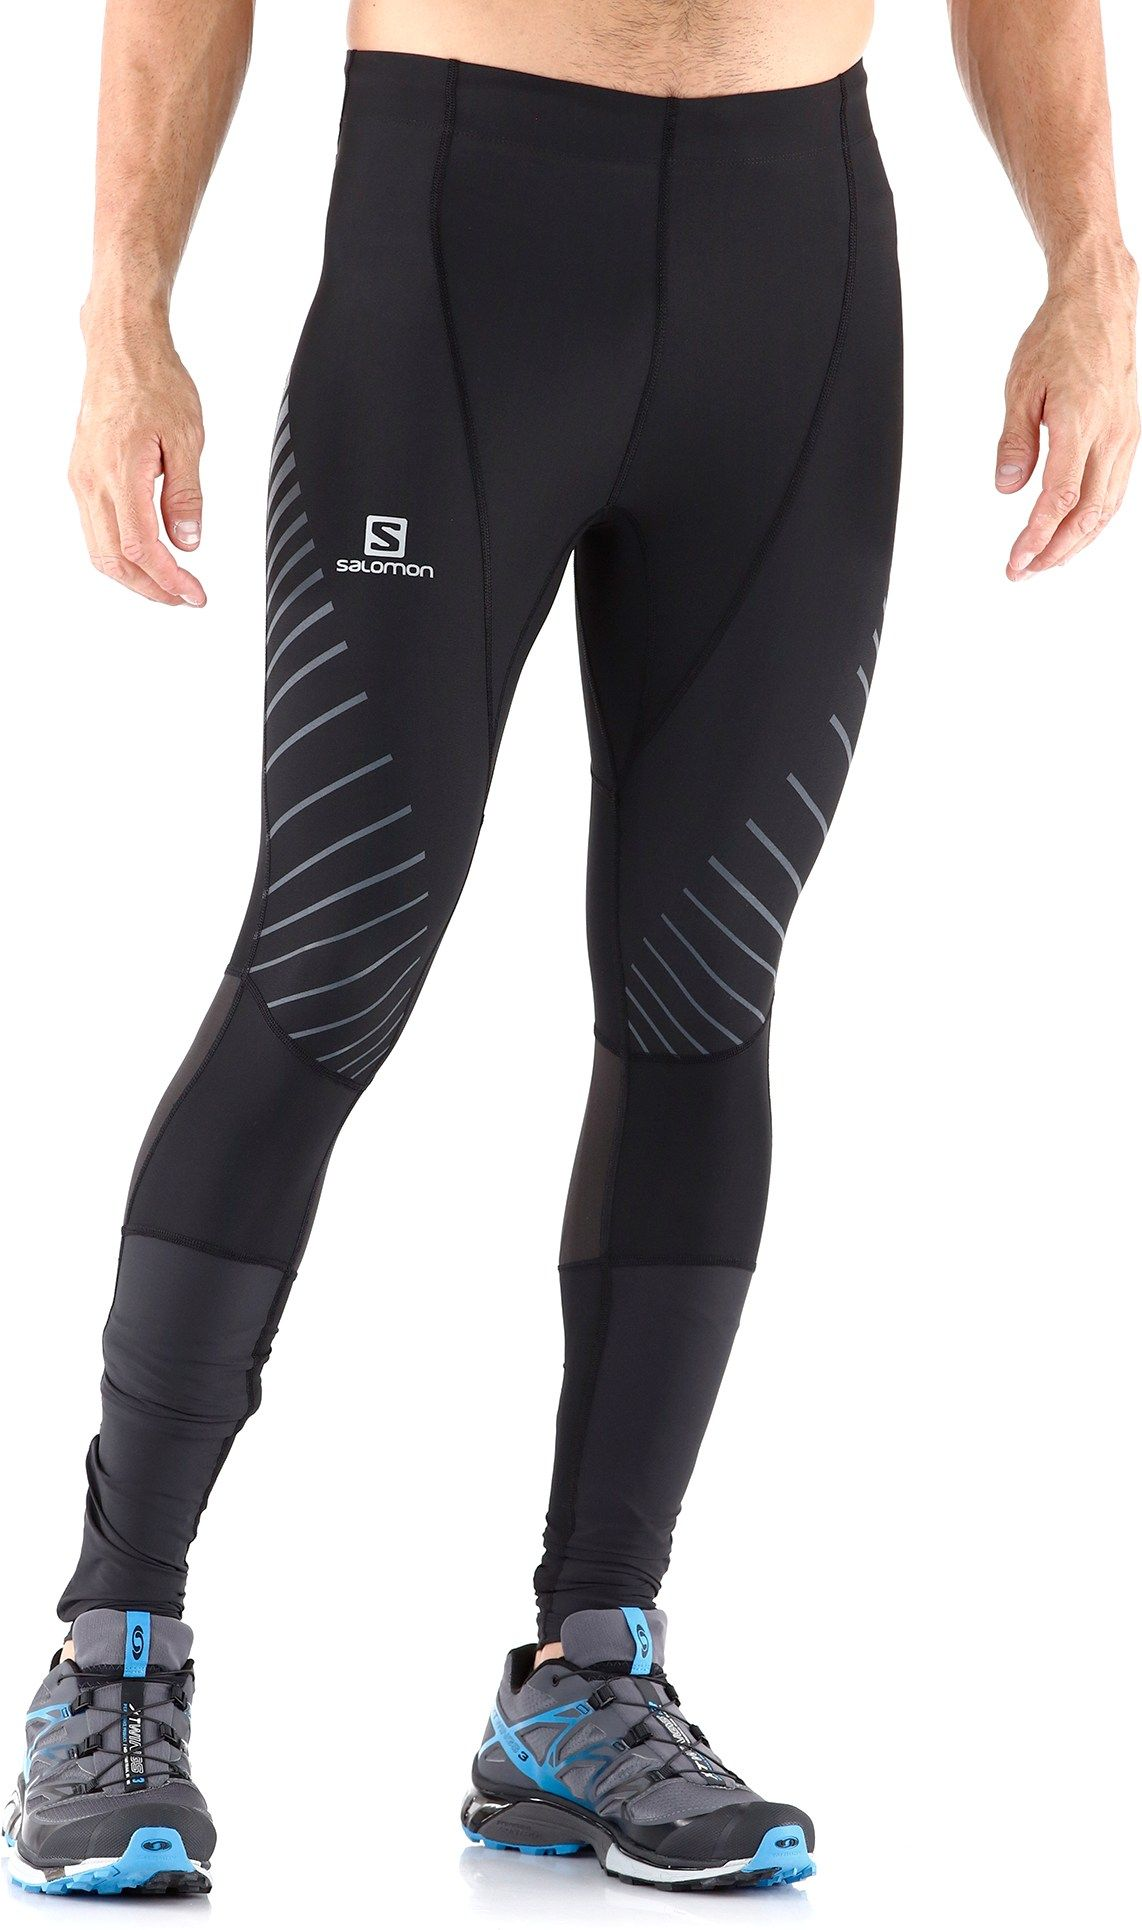 9a07e866c2627 Salomon Endurance Tights - Men's (end 9/25/2021 12:00 AM)